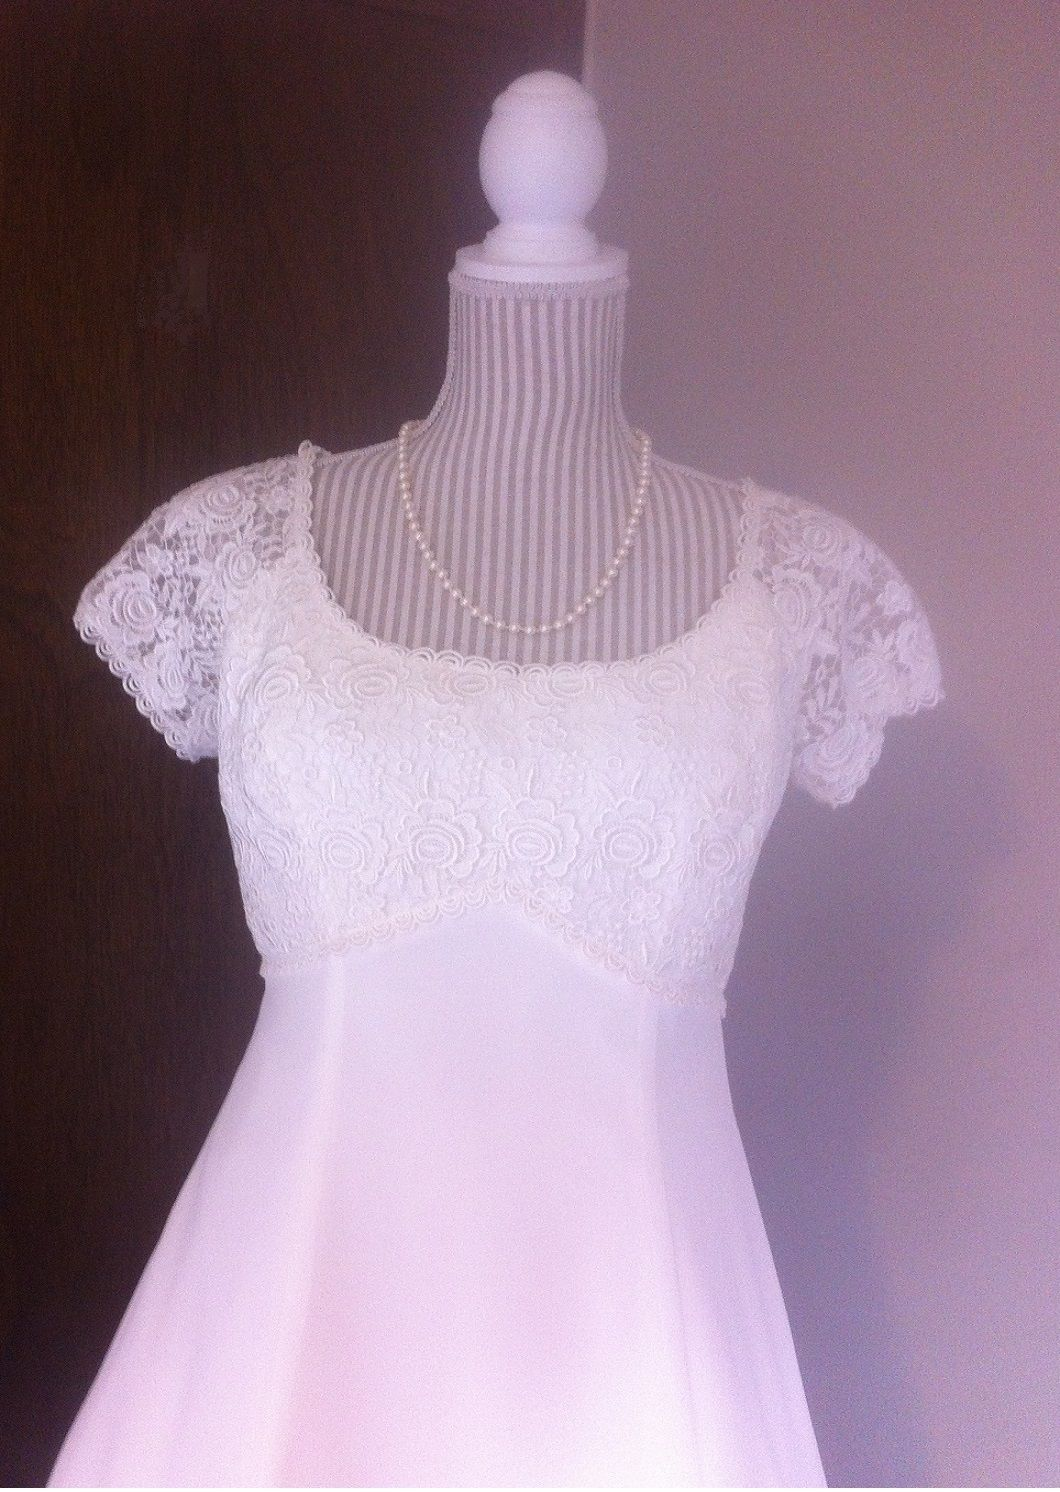 Lds Wedding Gowns For Rent : Wedding prom bridesmaids dresses plus mother of the bride